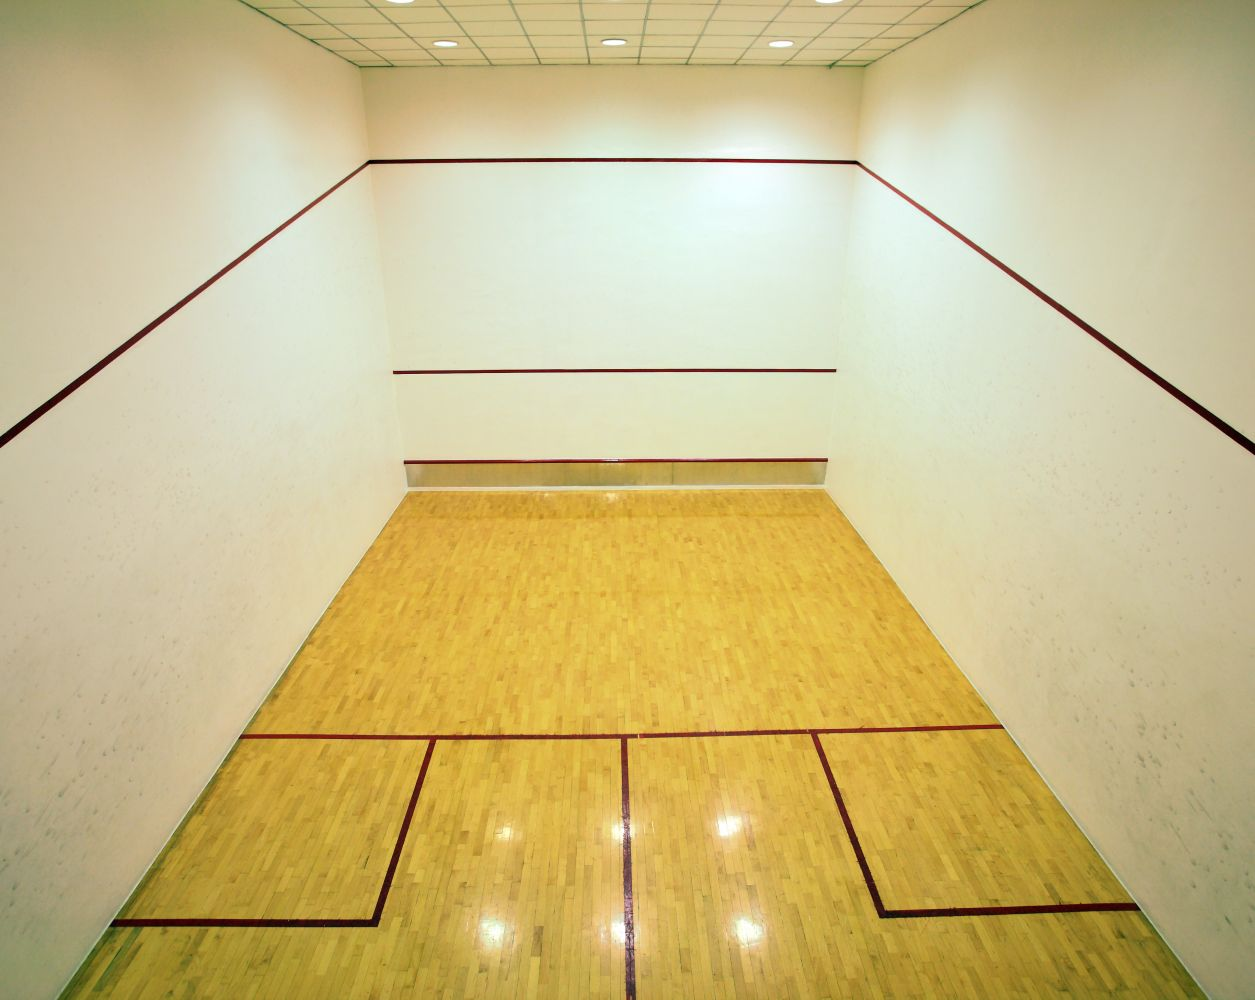 playing squash safely, advice & guidance for painting a squash court